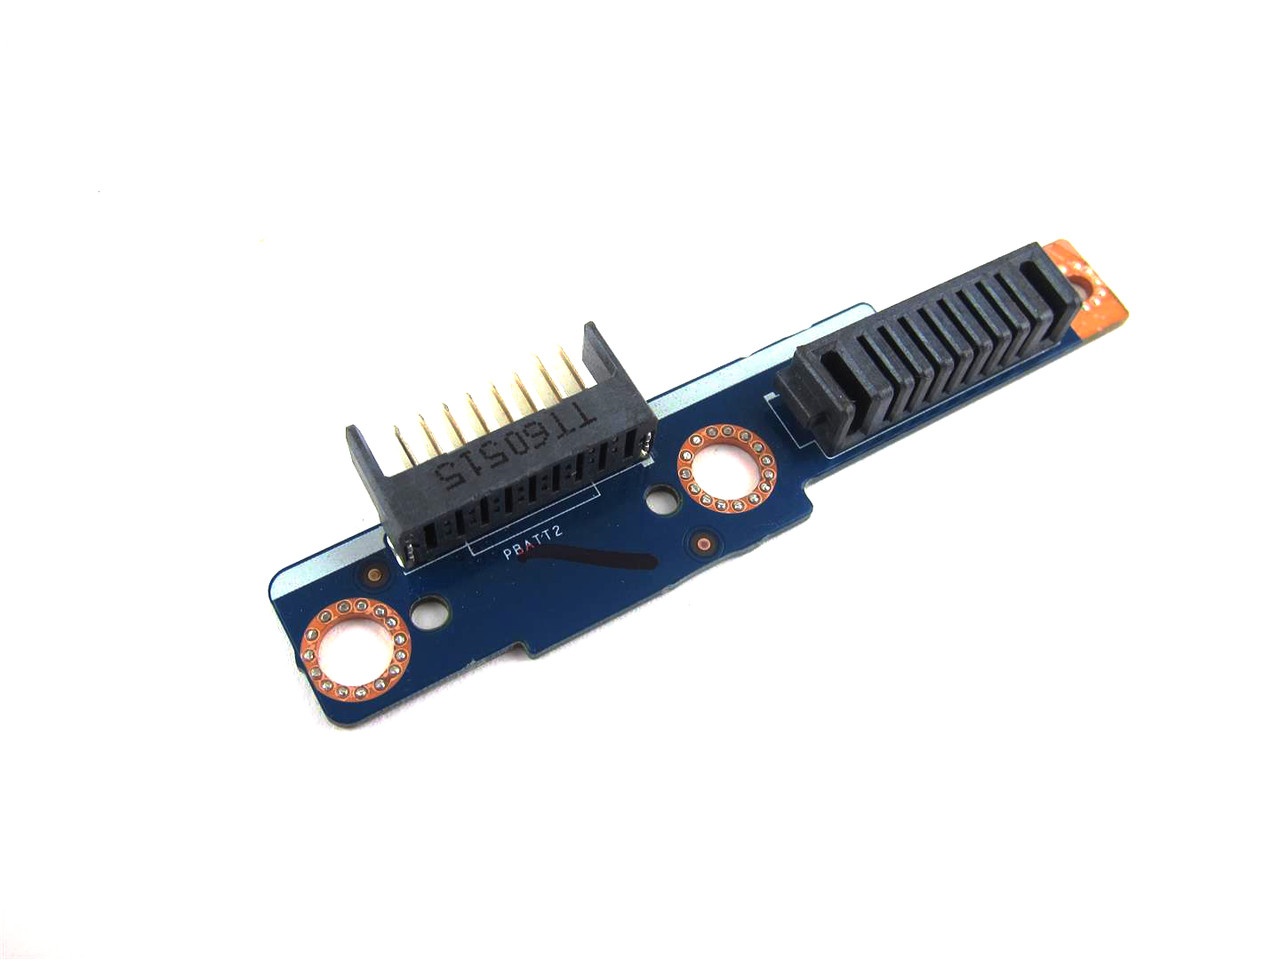 Dell Inspiron 17 5755 / 5758 / 5759  Battery Connector Board - LS-B915P